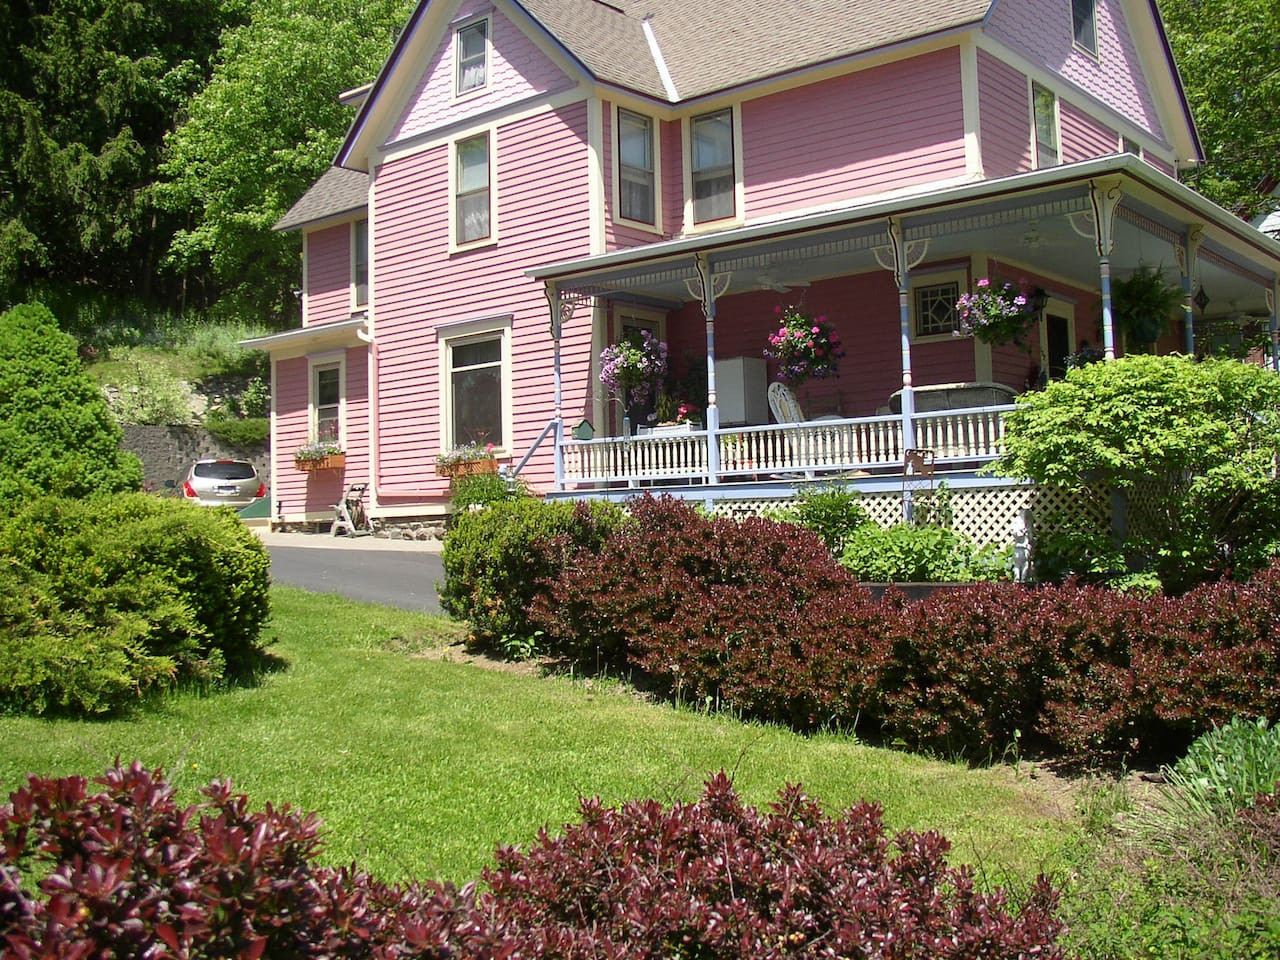 Relax on the wraparound porch of The Rose and Thistle Bed and Breakfast